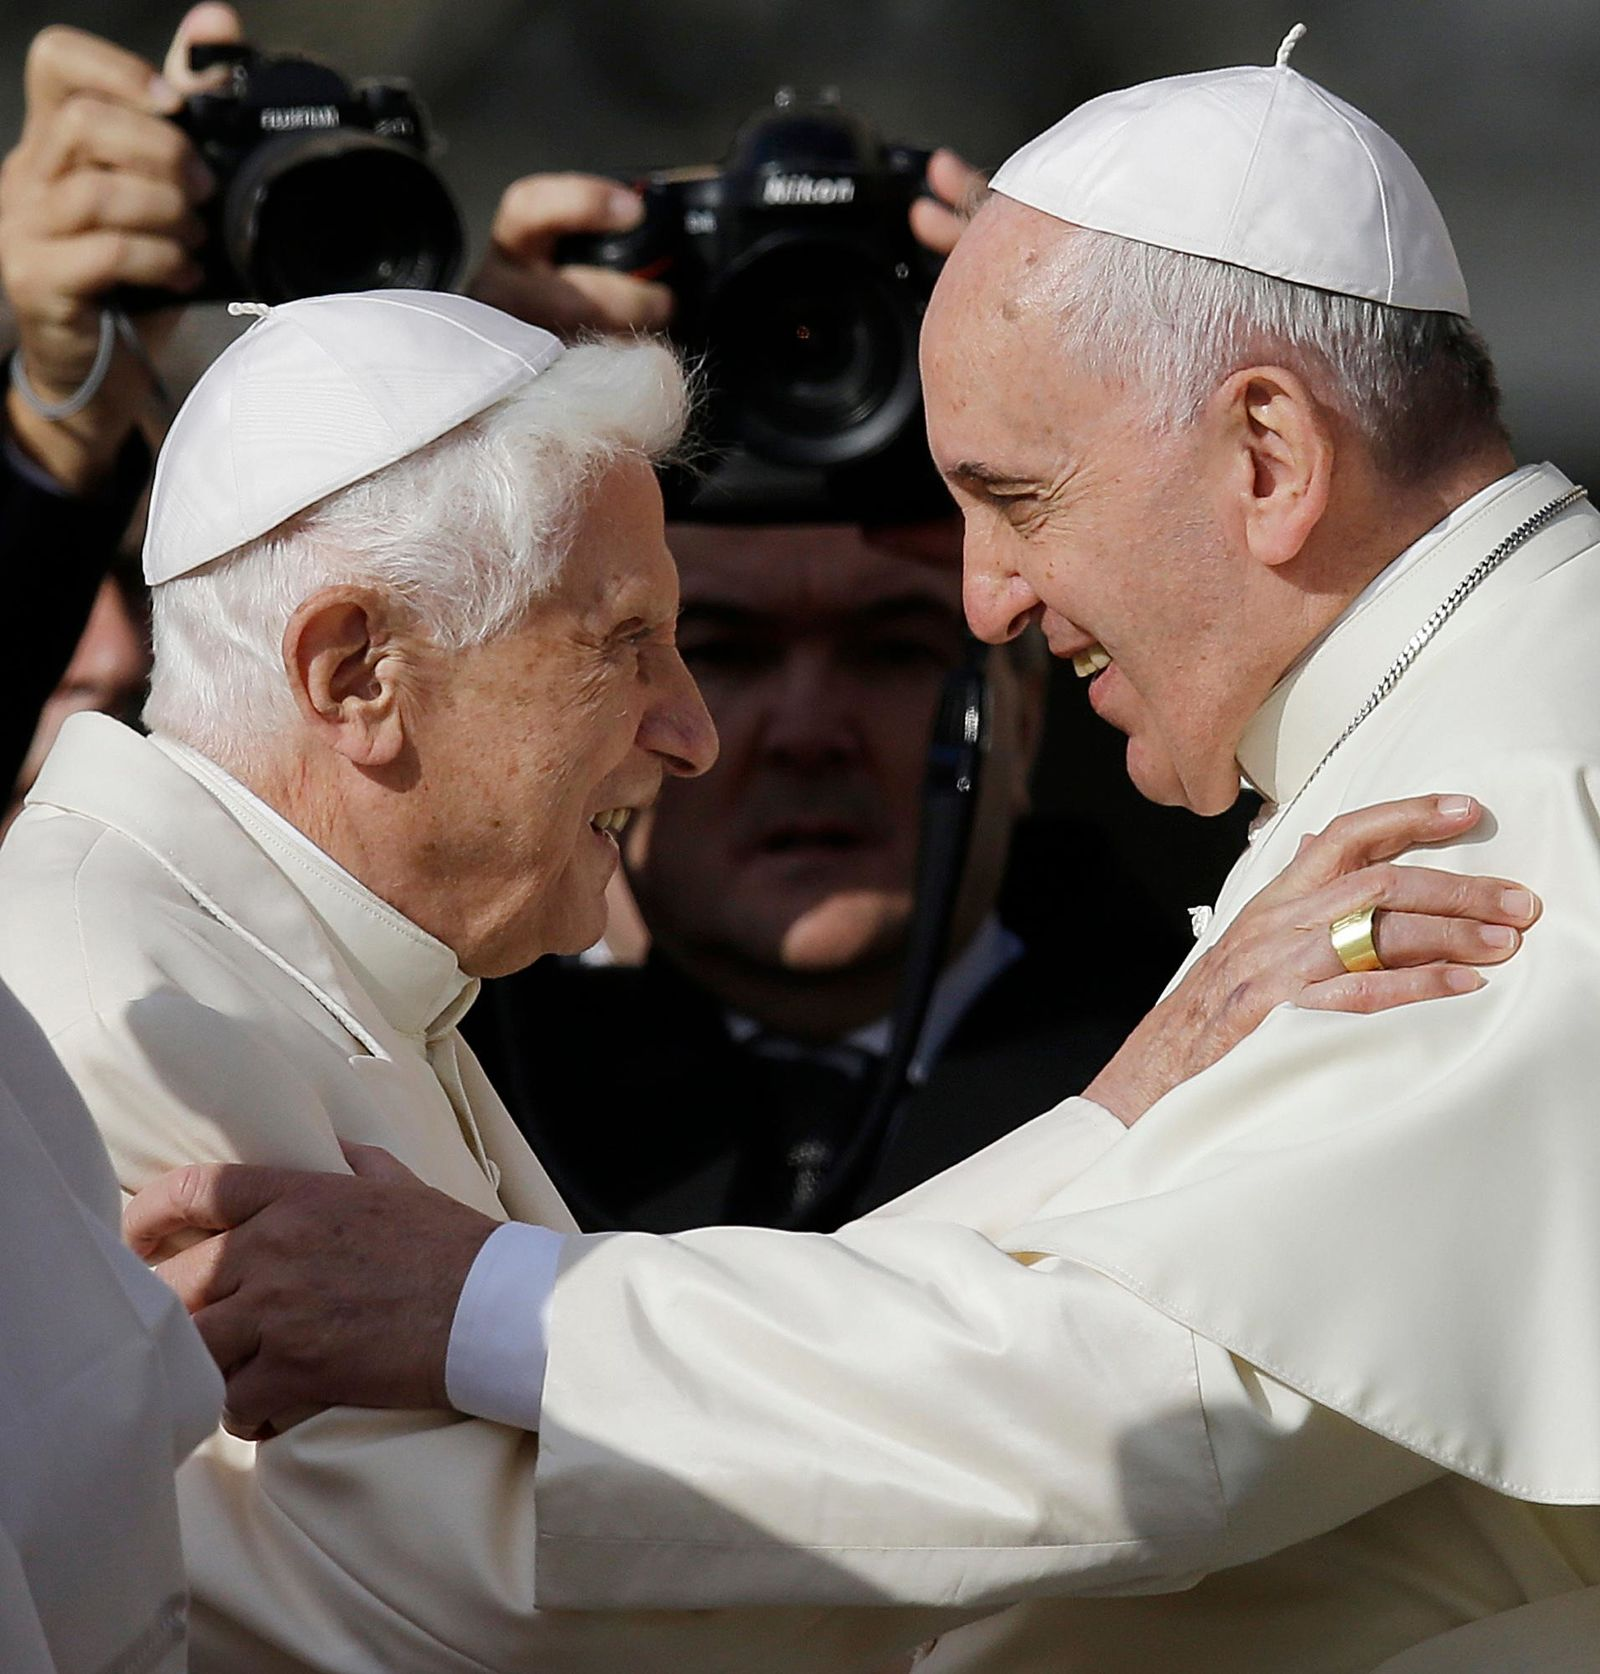 FILE - In this Sept. 28, 2014 file photo, Pope Francis, right, hugs Pope Benedict XVI prior to the start of a meeting with elderly faithful in St. Peter's Square at the Vatican.{ } (AP Photo/Gregorio Borgia, File)